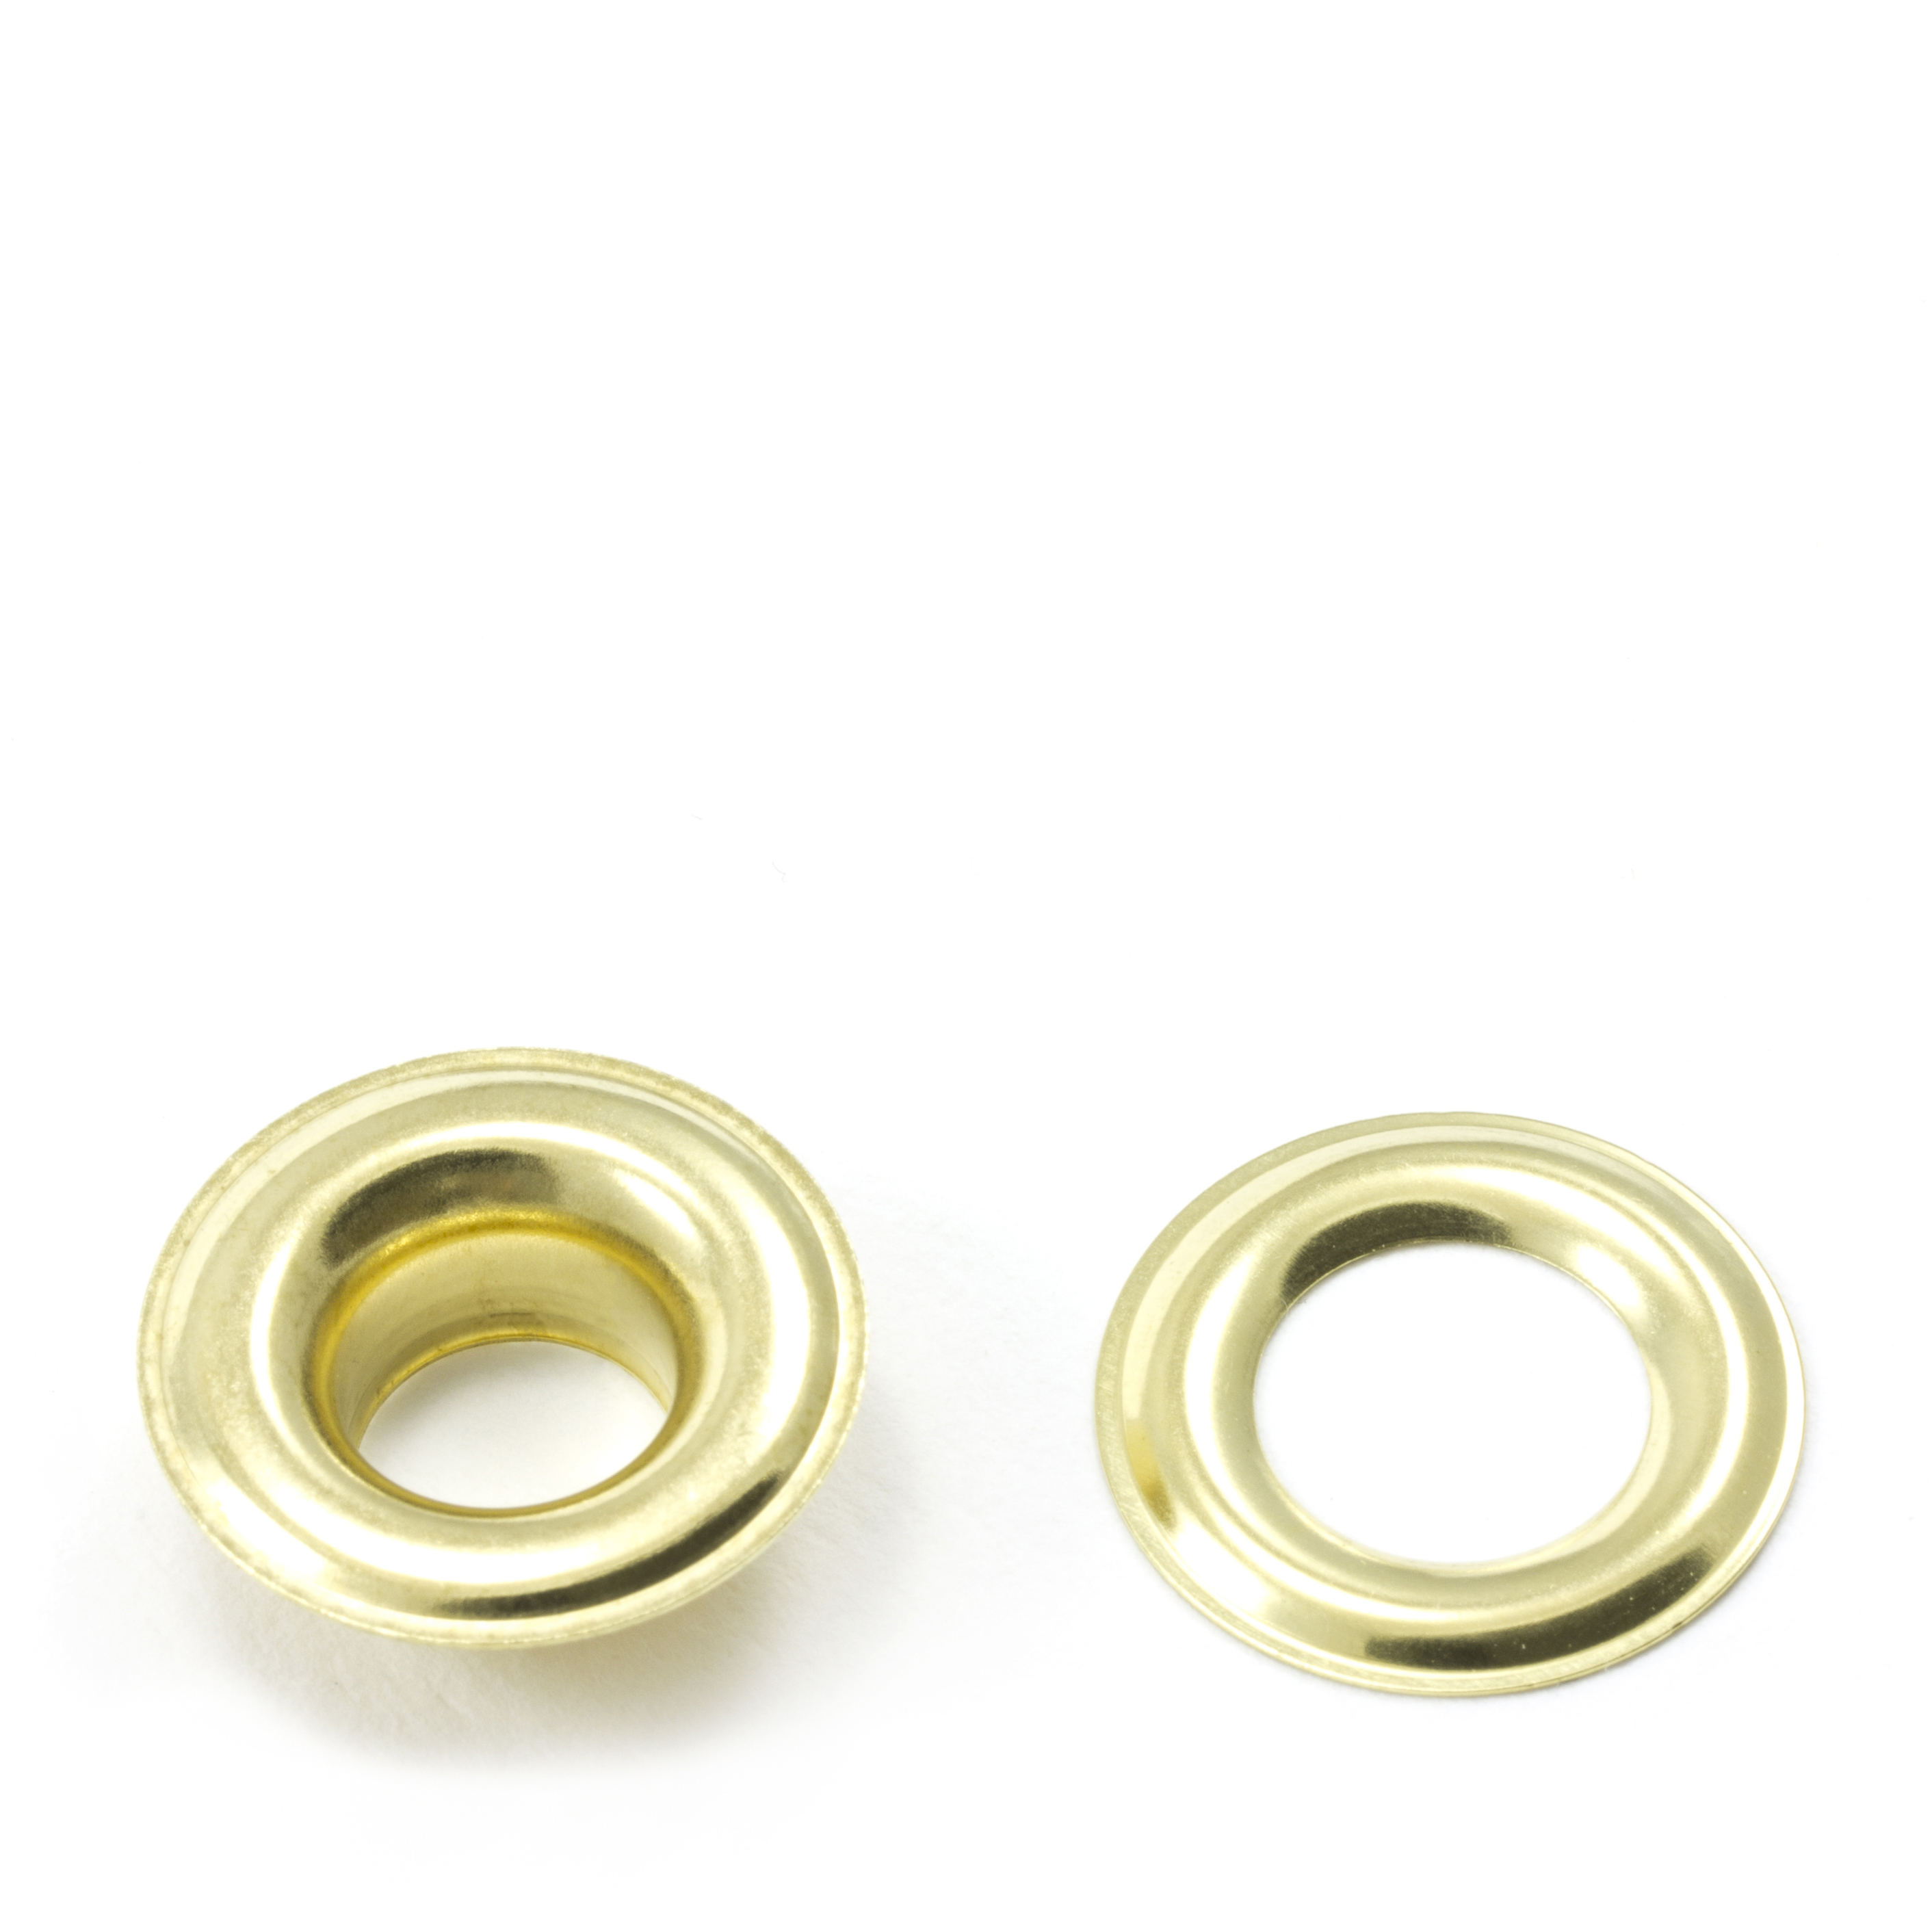 Thumbnail Grommet with Plain Washer #3 Brass 7/16 1